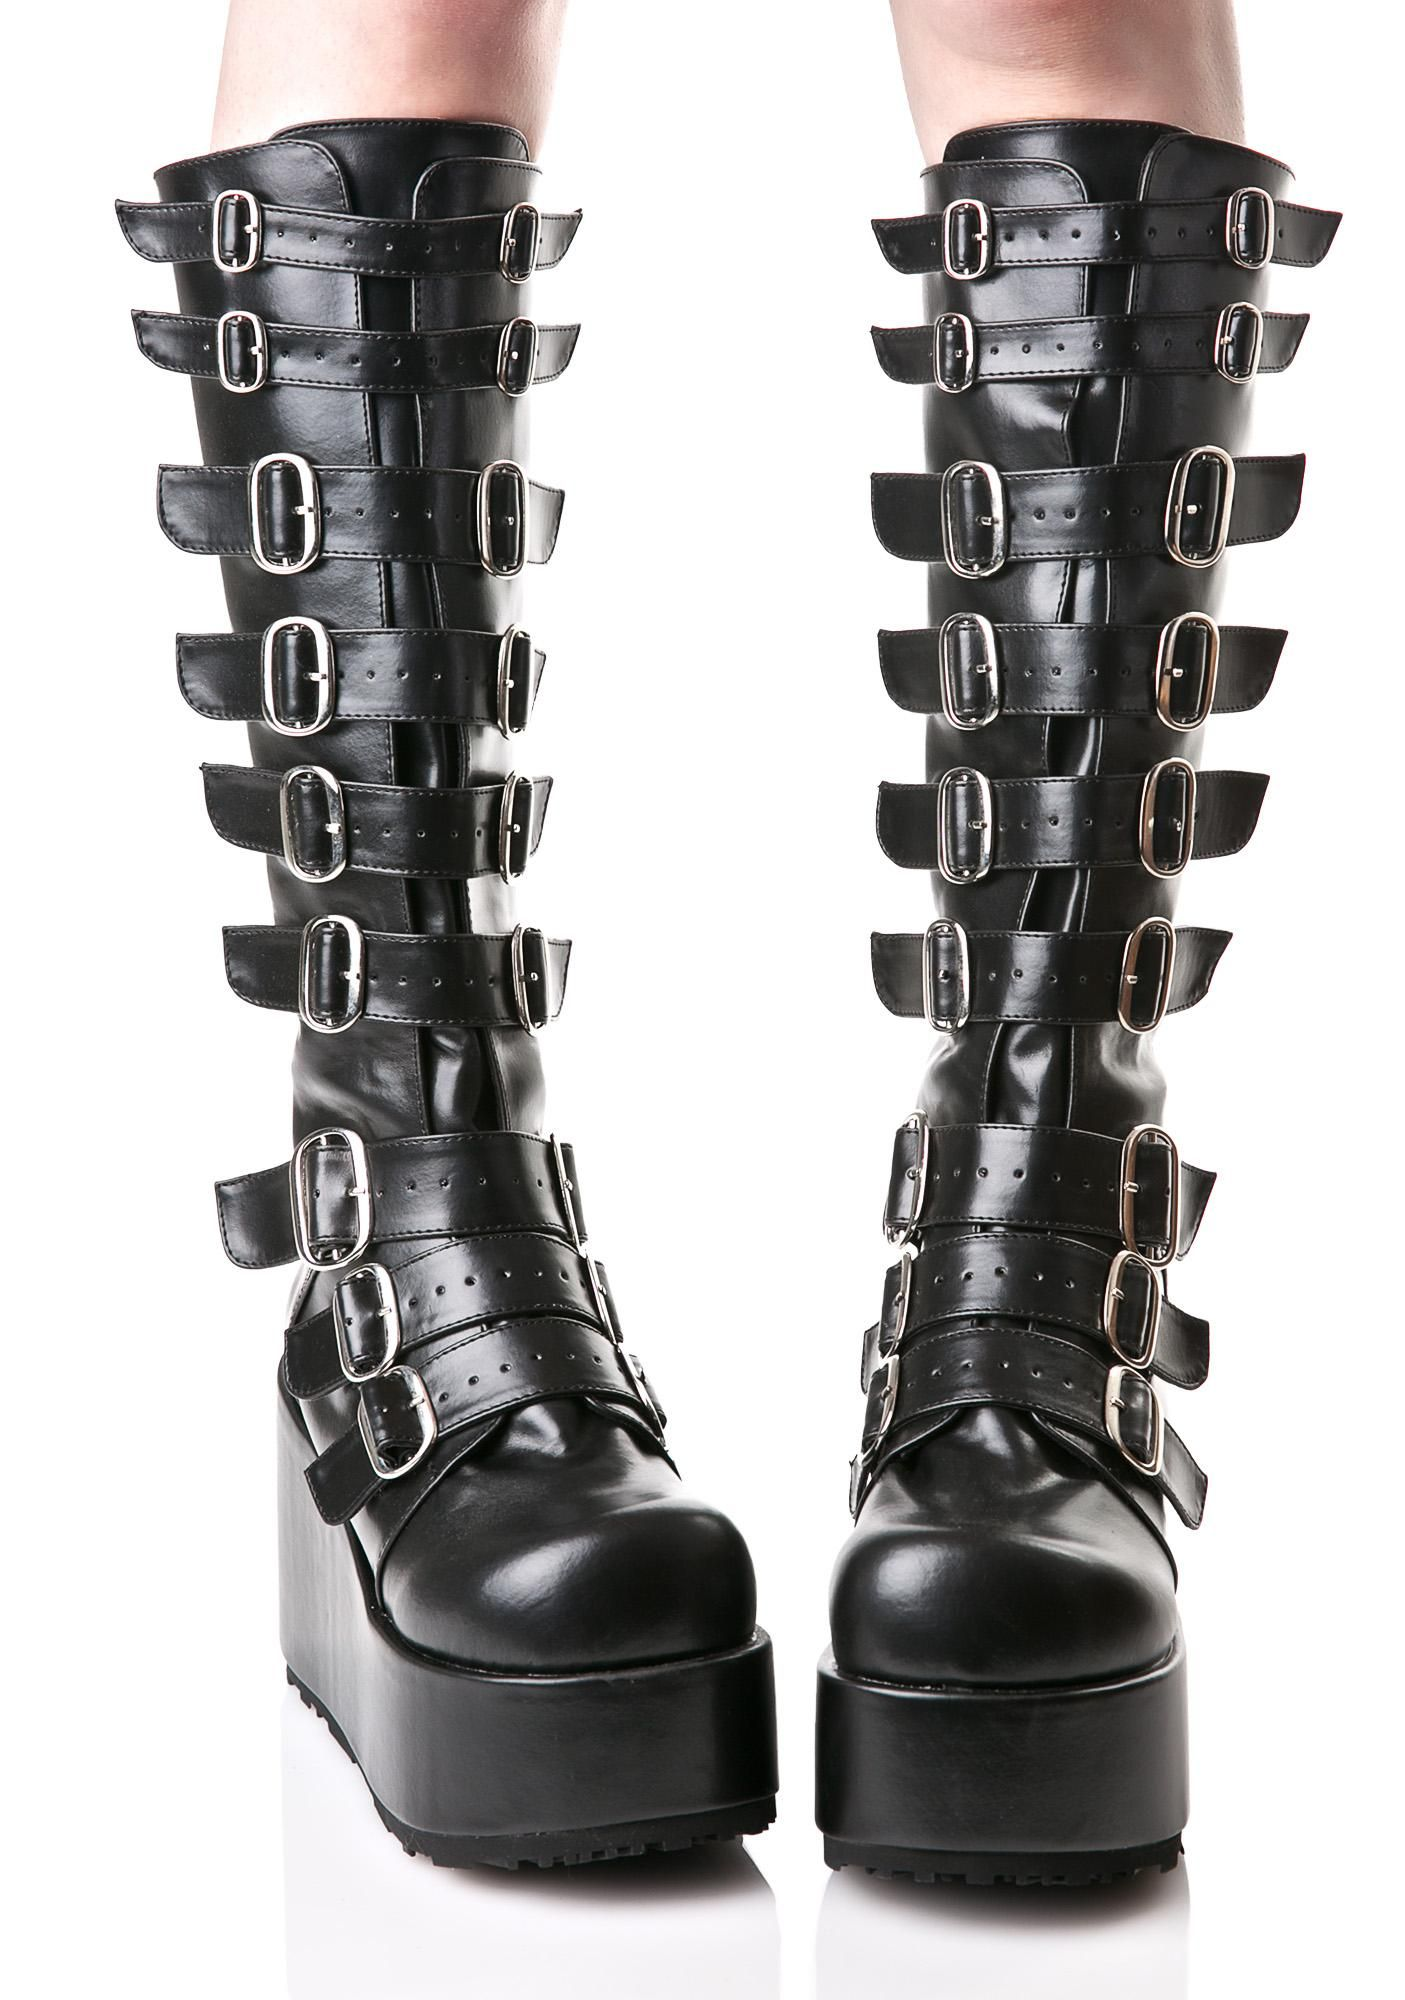 487b4e2f9d072 Demonia Concord Buckle Platform Boots are ready to strap ya in for the time  of yer lyfe. These hardcore knee-high boots are constructed from supa  supple ...